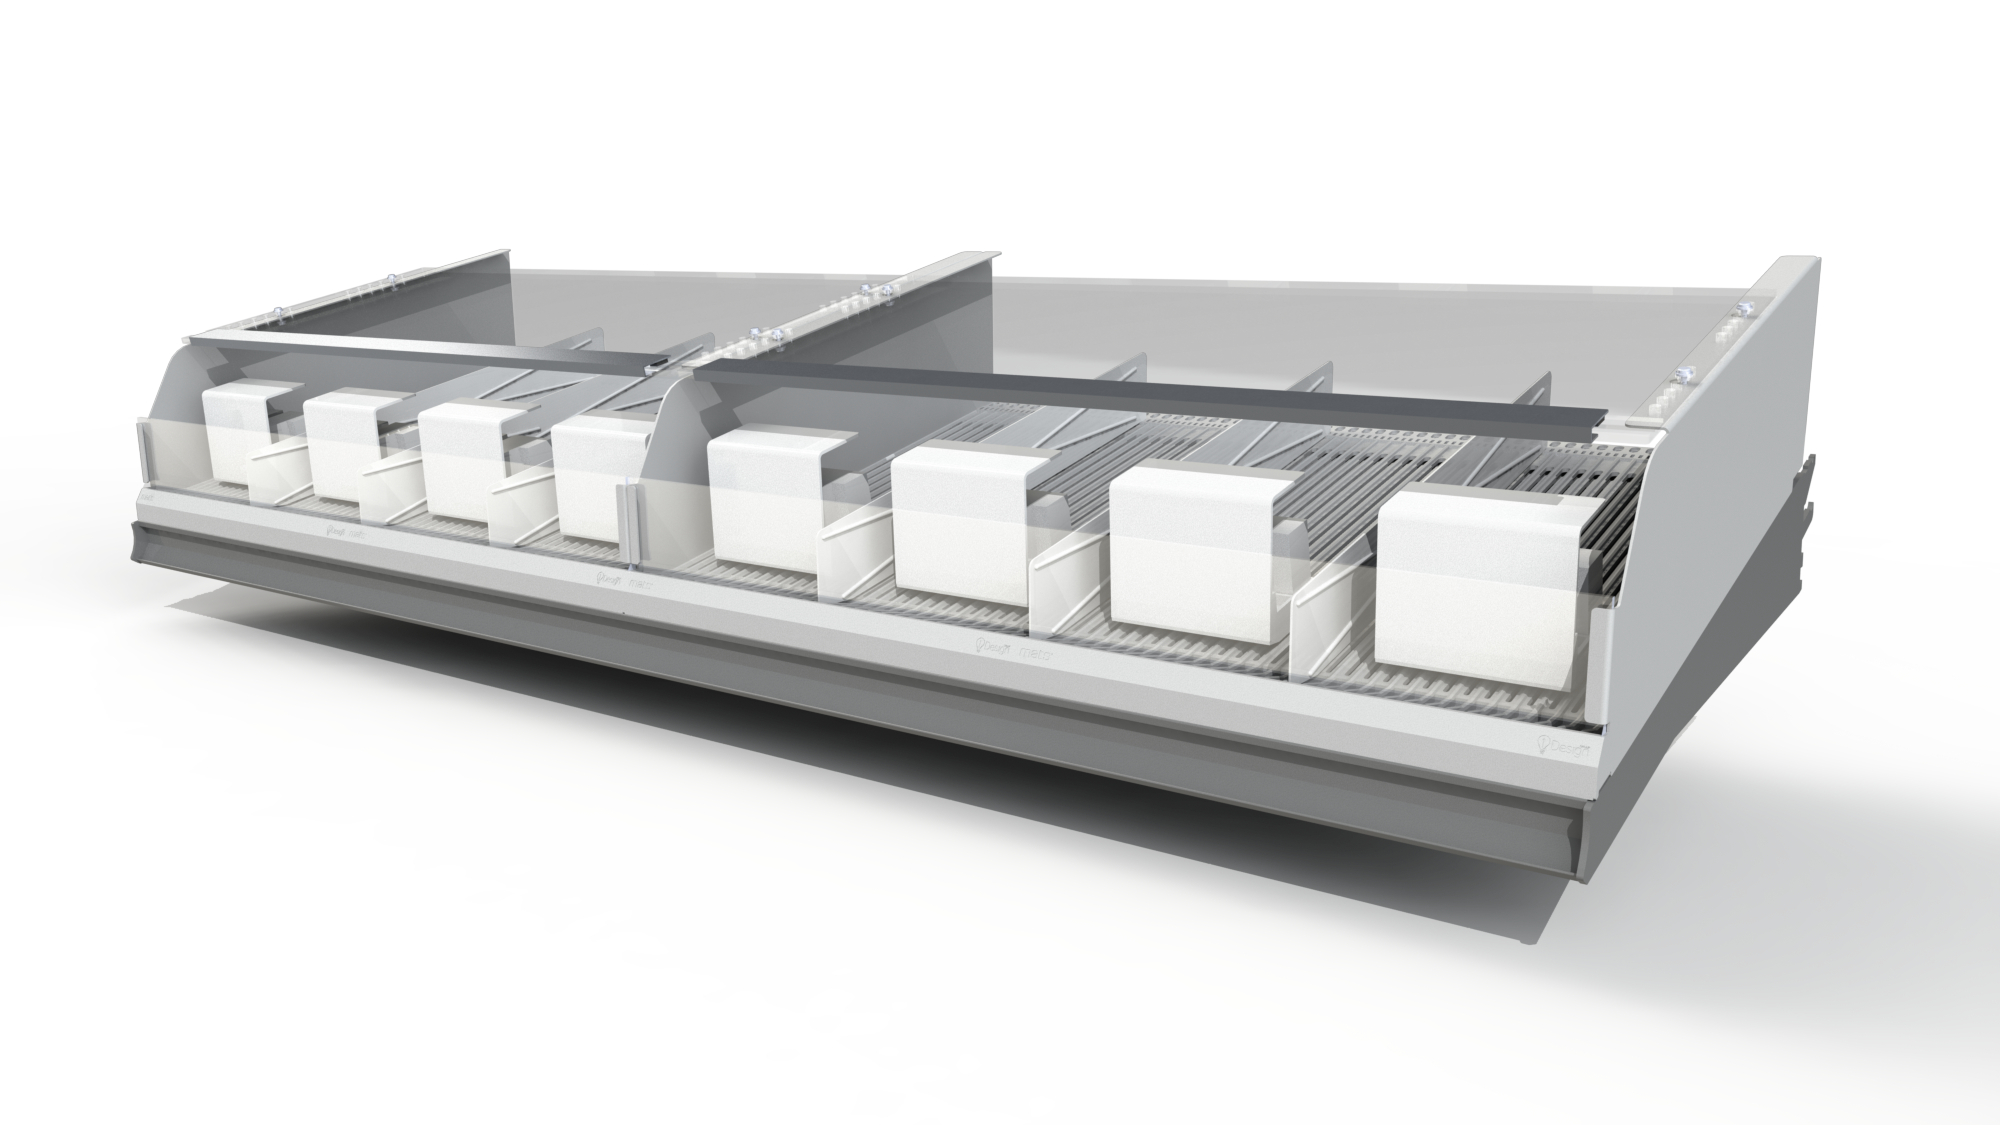 ADJUSTABLE WIDTH  The system is fully modular and comes in widths of 1, 2, 3 and 4 foot wide. Custom widths are possible on request.